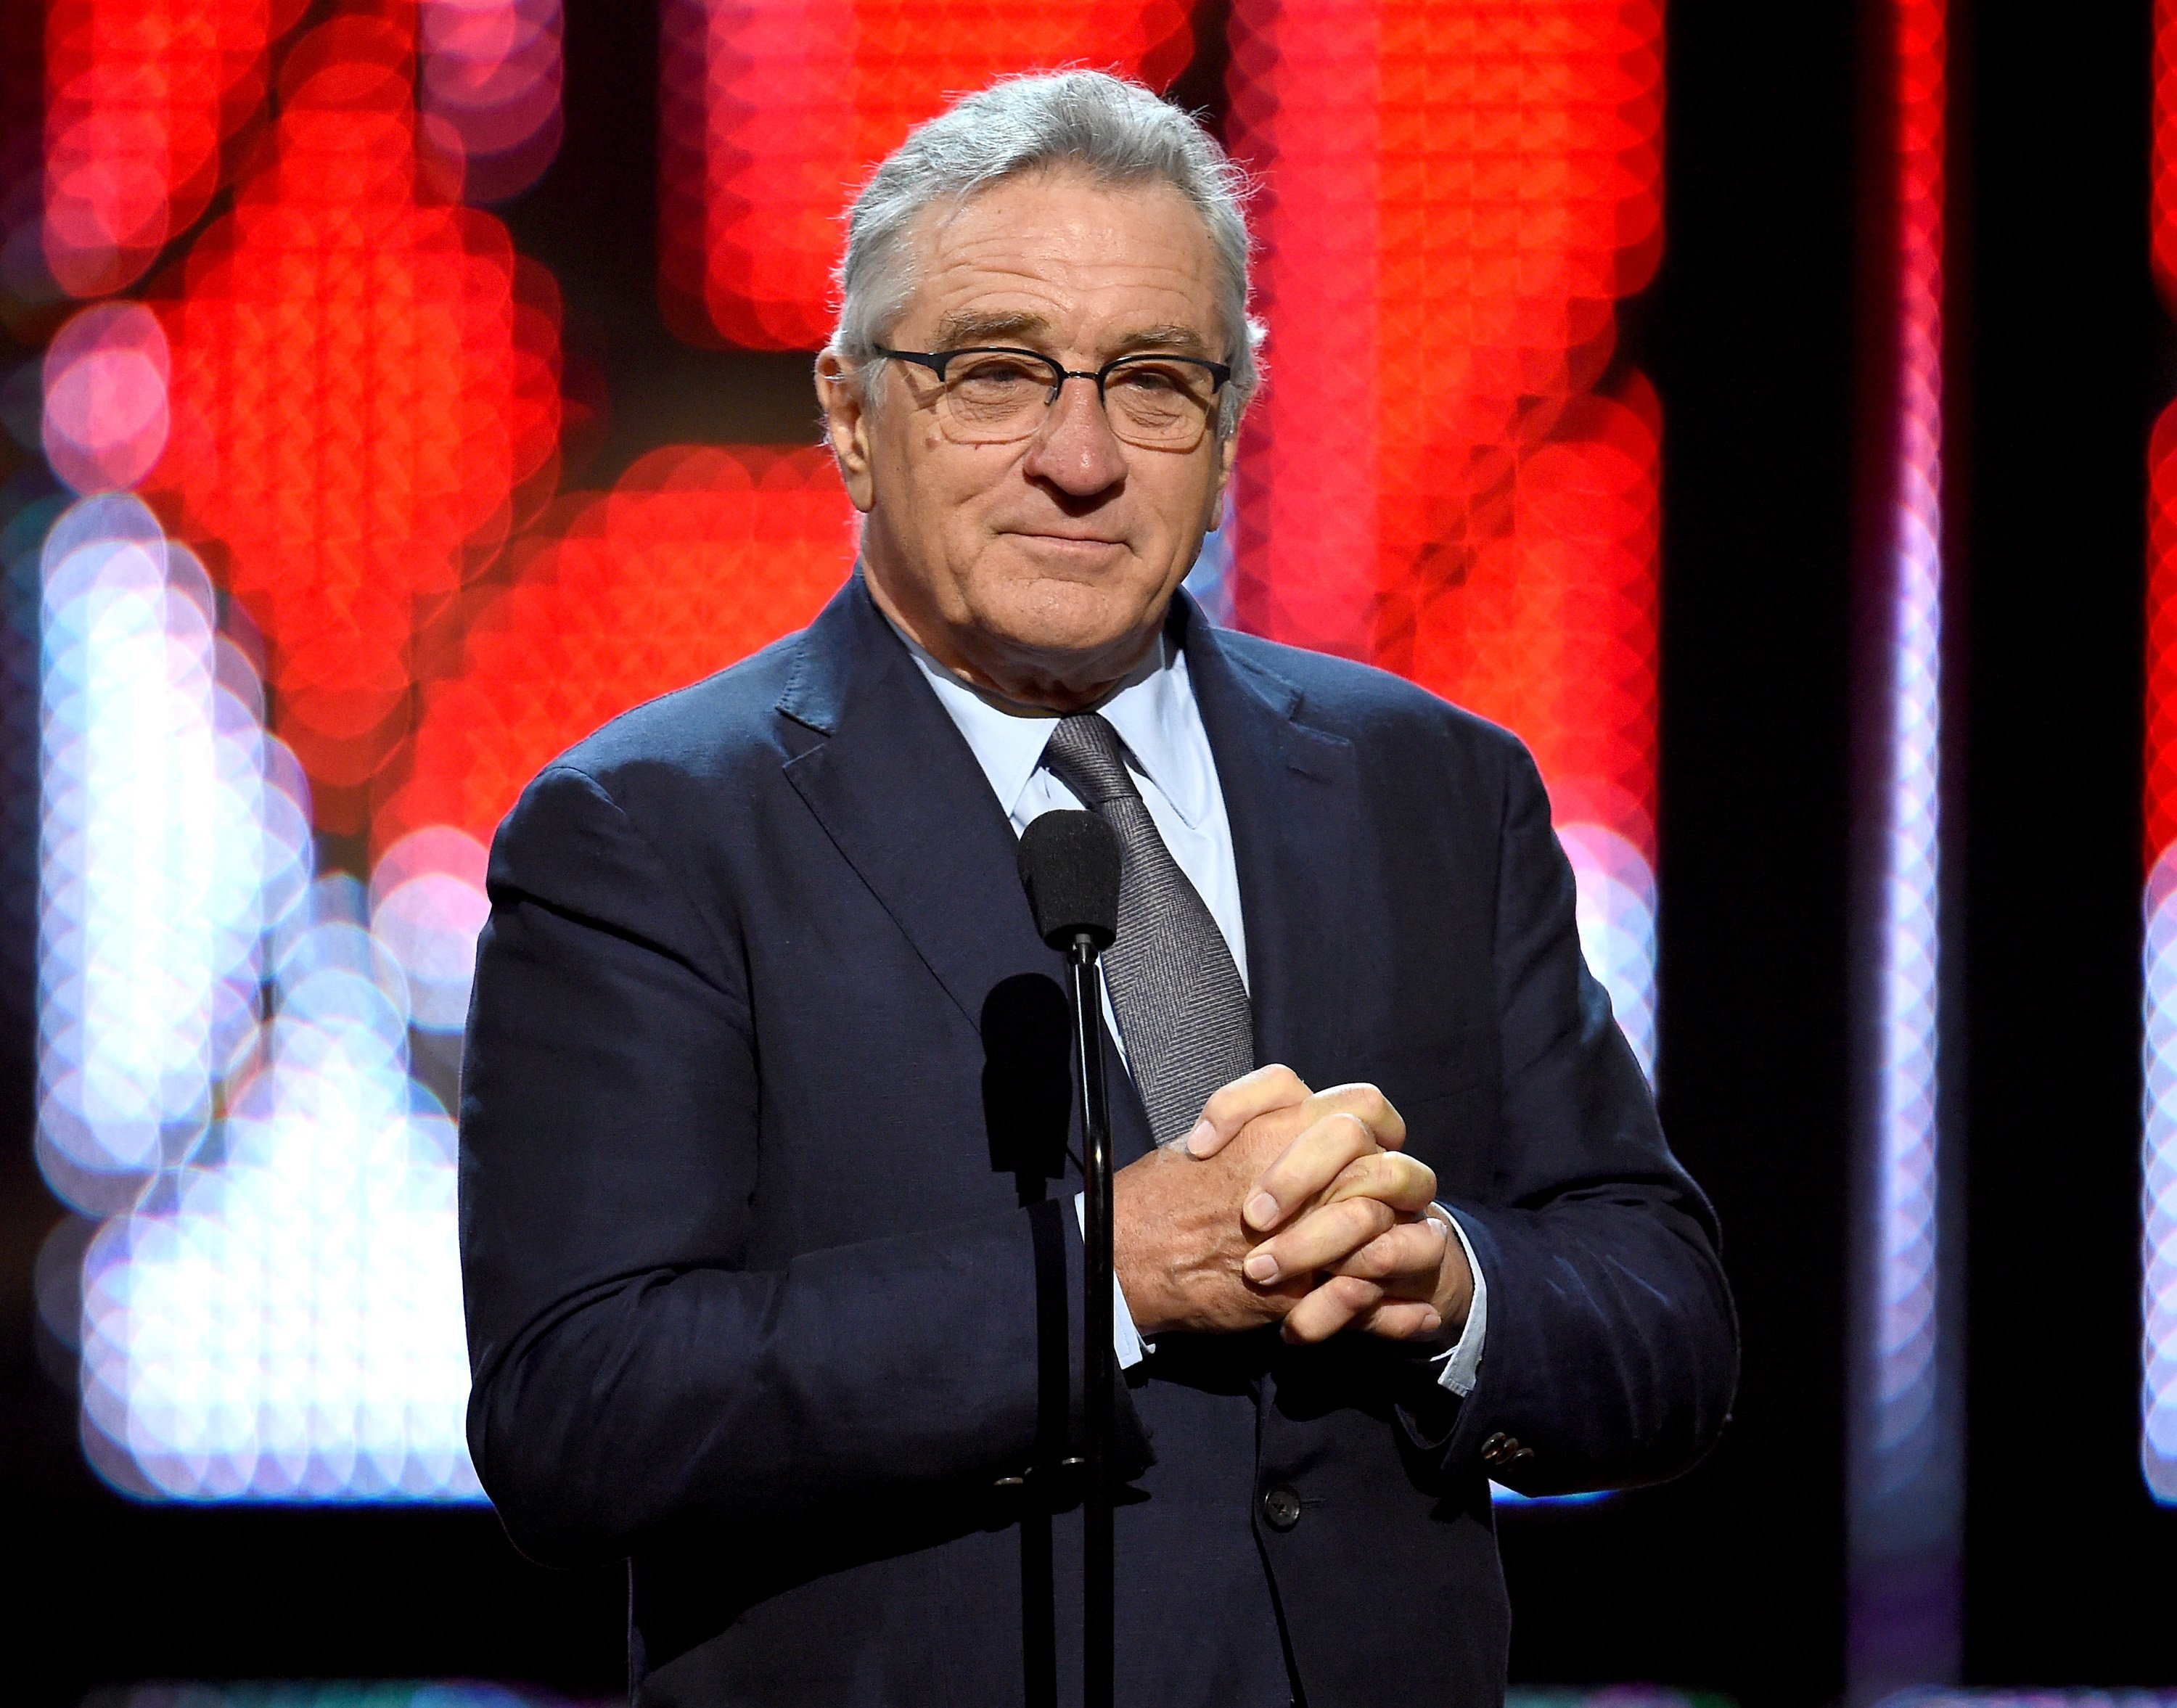 Actor Robert De Niro speaks onstage during Spike TV's 10th Annual Guys Choice Awards at Sony Pictures Studios on June 4, 2016, in Culver City, California. | Source: Getty Images.